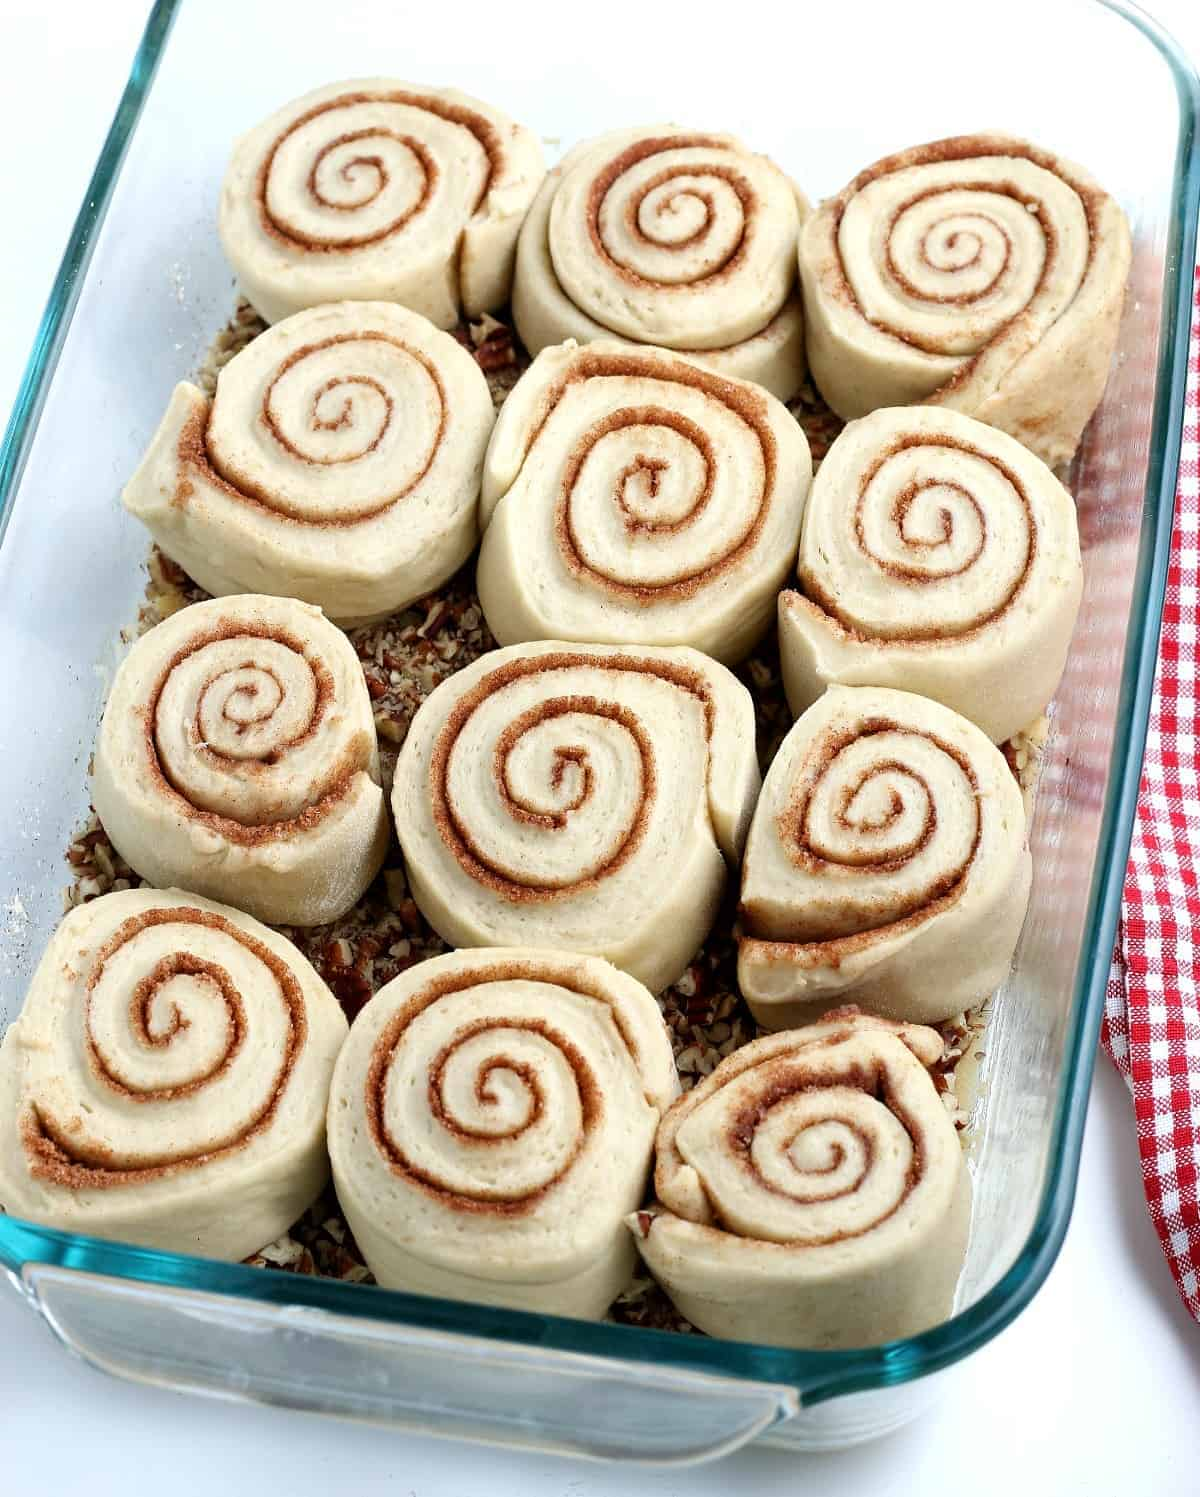 Perfect rolled cinnamon rolls are in a casserole waiting to be baked.